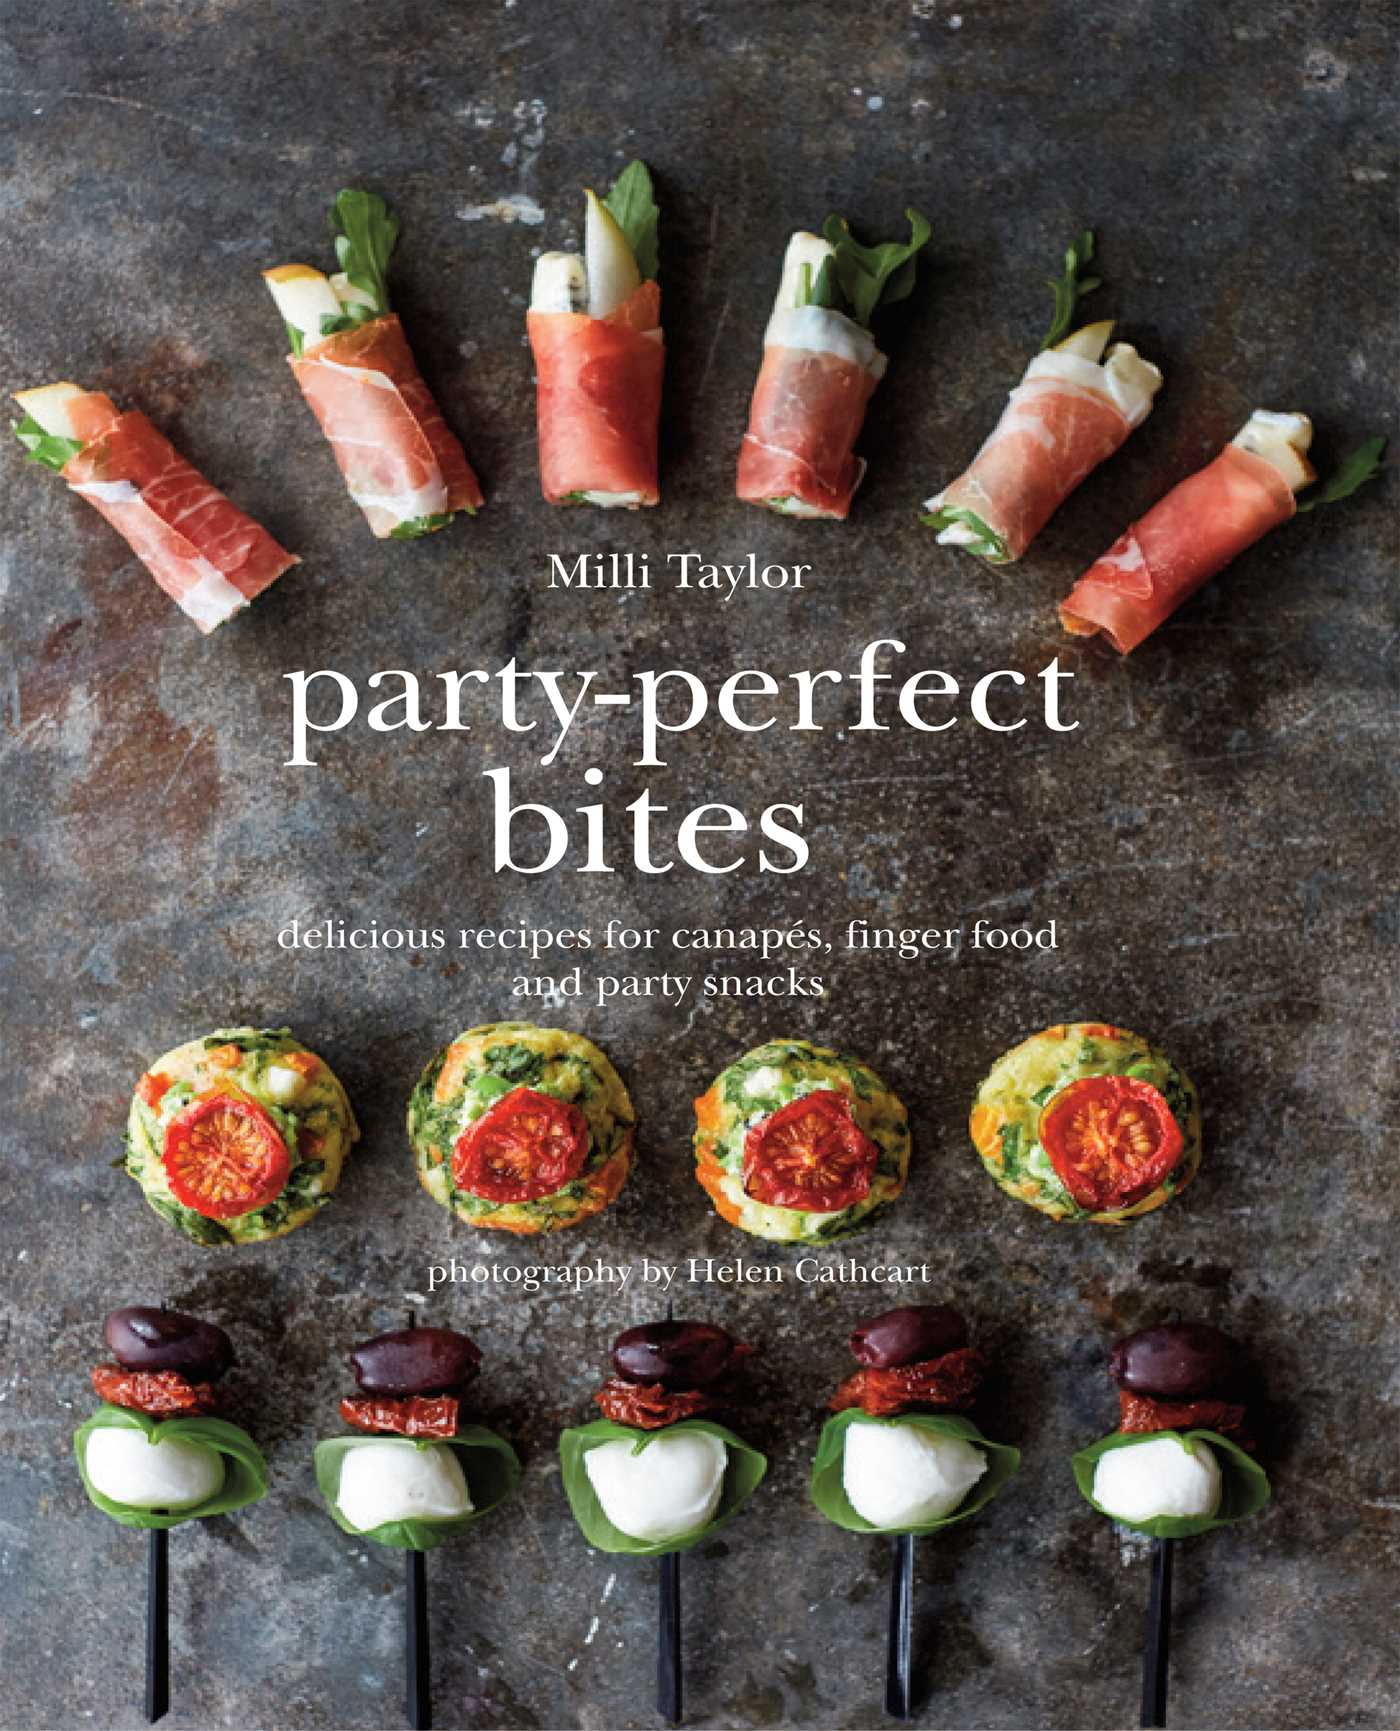 Party perfect bites book by milli taylor official publisher page party perfect bites 9781849755689 hr forumfinder Gallery